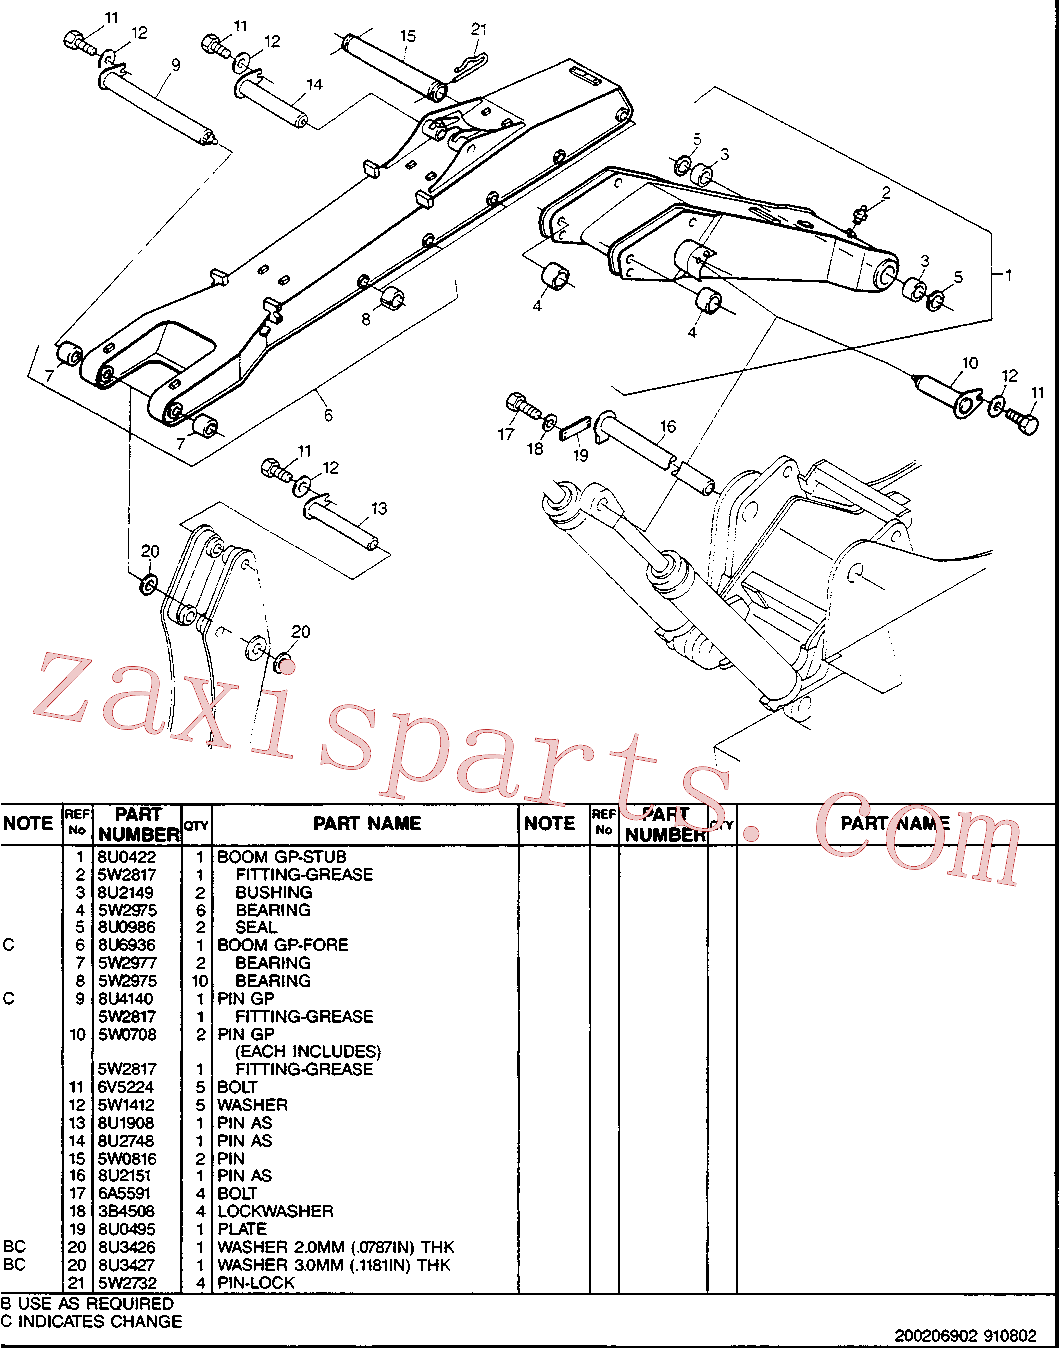 CAT 5W-6782 for 213B Excavator(EXC) boom, sticks, linkage & buckets 8U-2749 Assembly